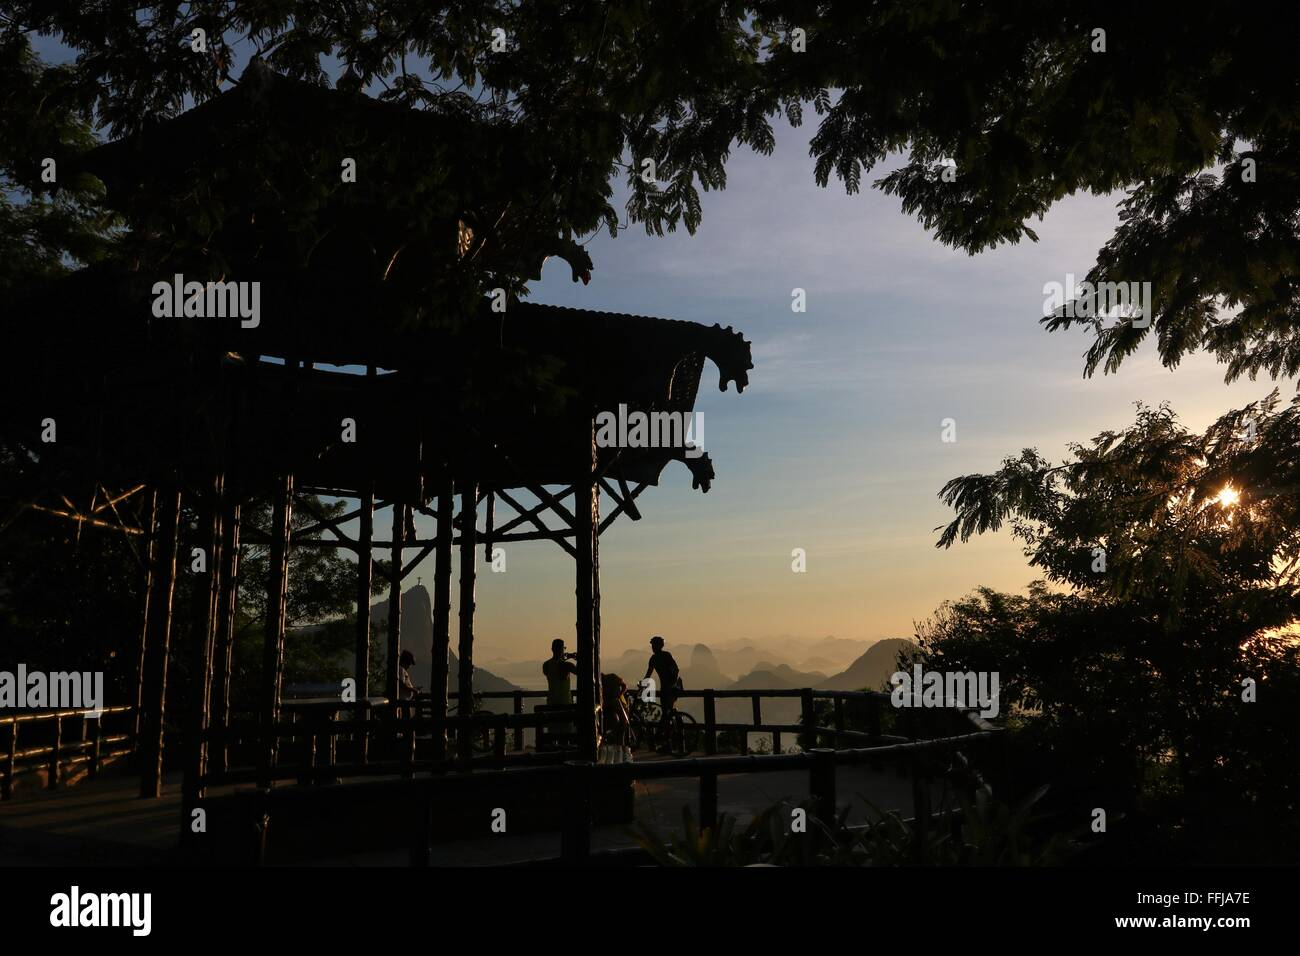 Rio de Janeiro, Brazil, 14th February. People enjoy the sunrise at Vista Chinesa (Chinese Belvedere) in Tijuca Forest Stock Photo